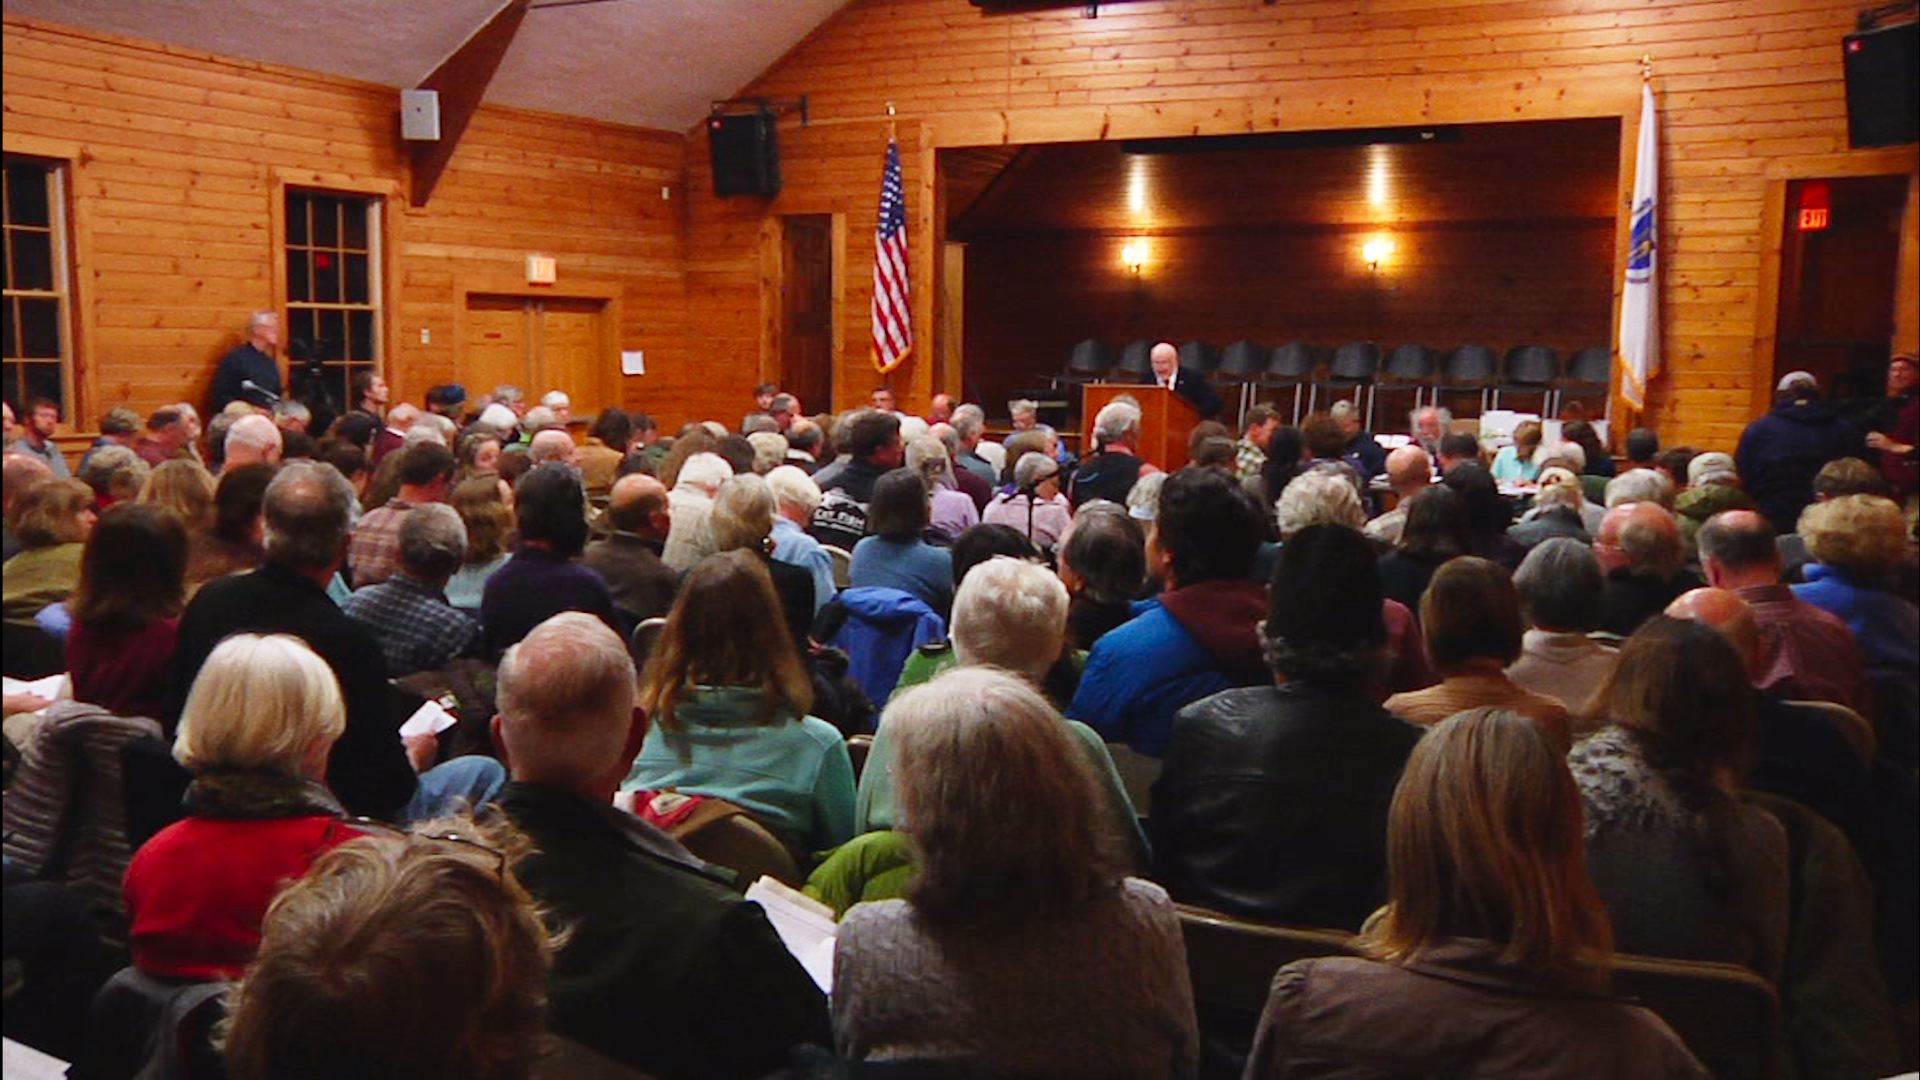 Chilmark's annual town meeting where residents voted on a large house bylaw on April 22, 2013